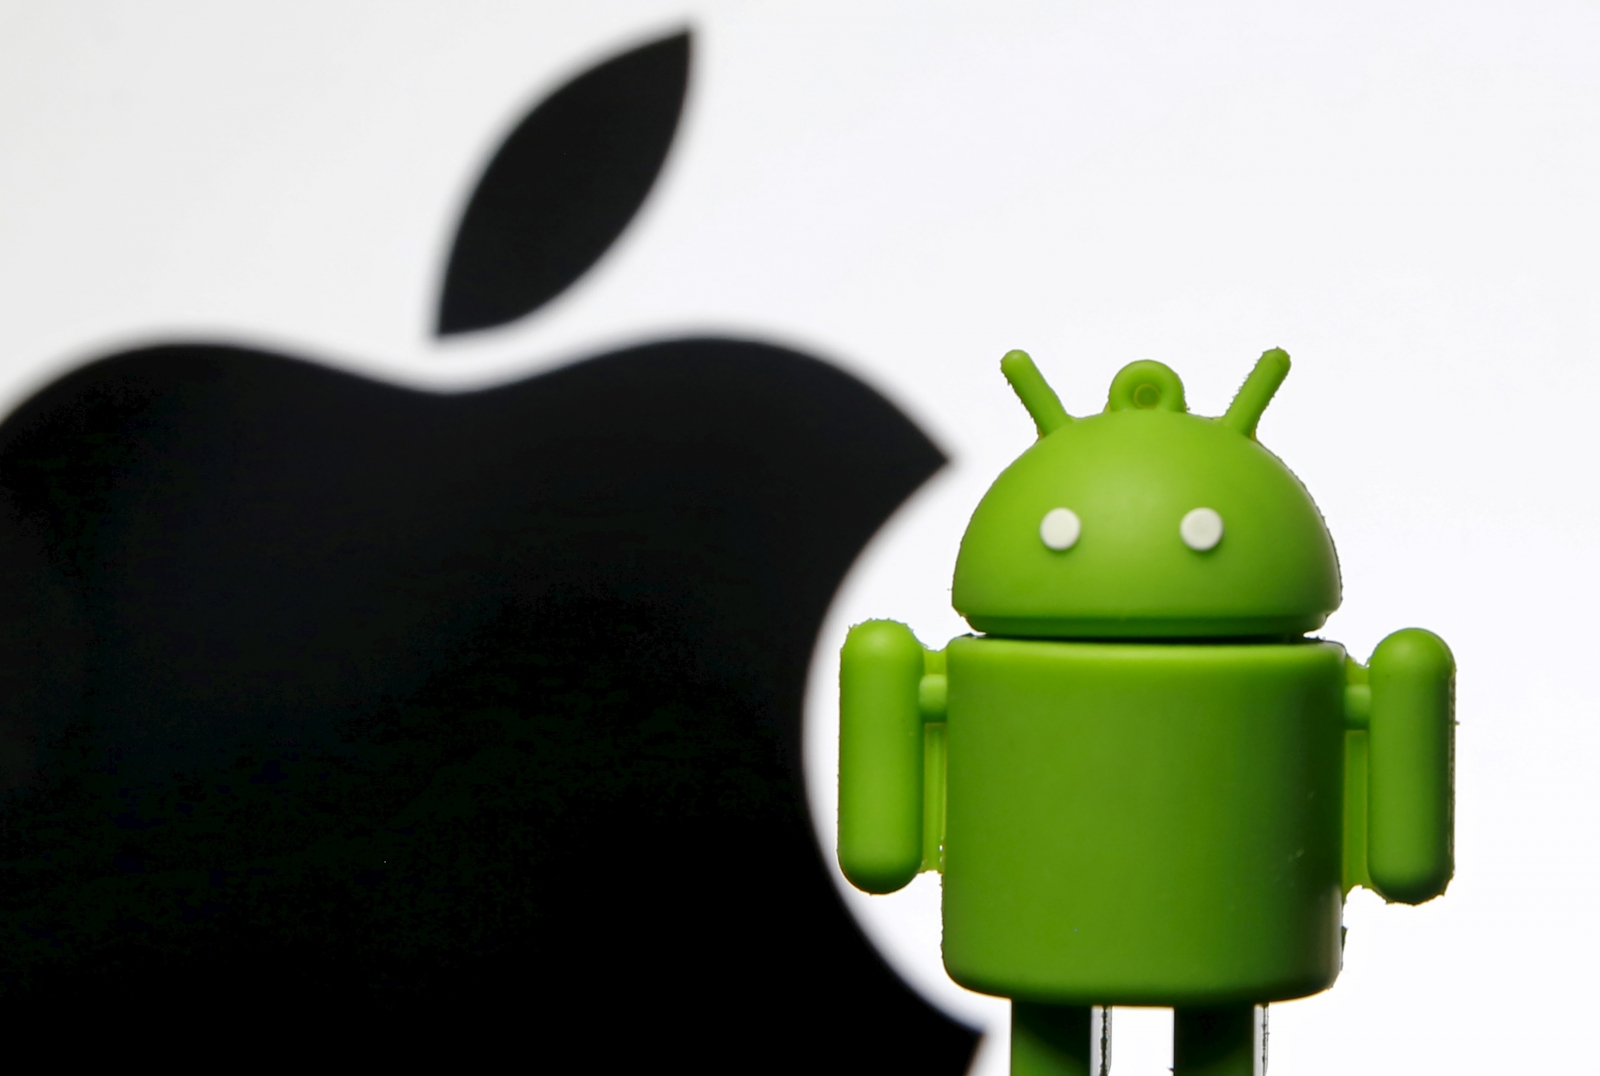 Apple Android logos